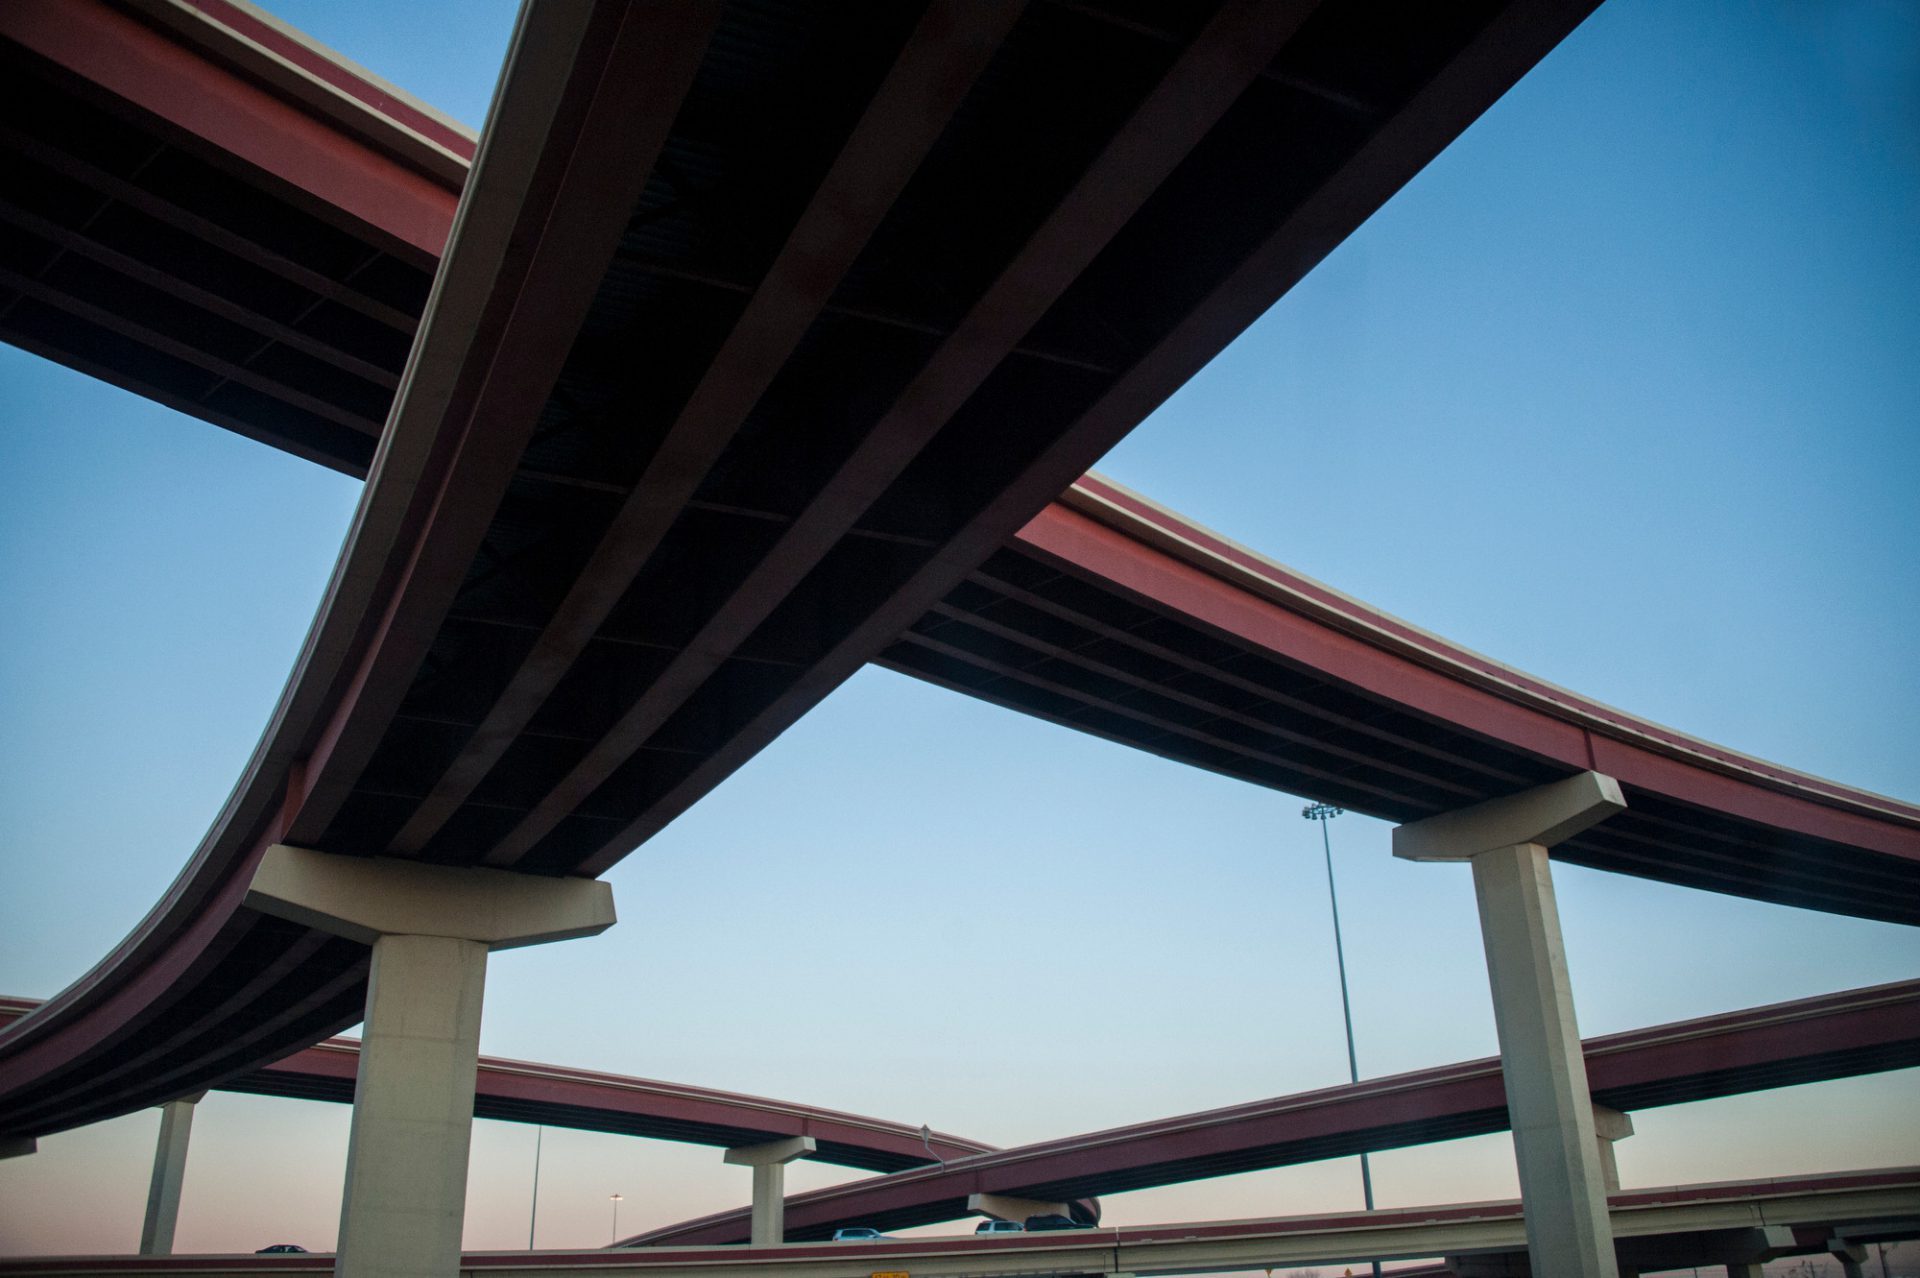 Photo: Bridges along interstate 35 in Texas.